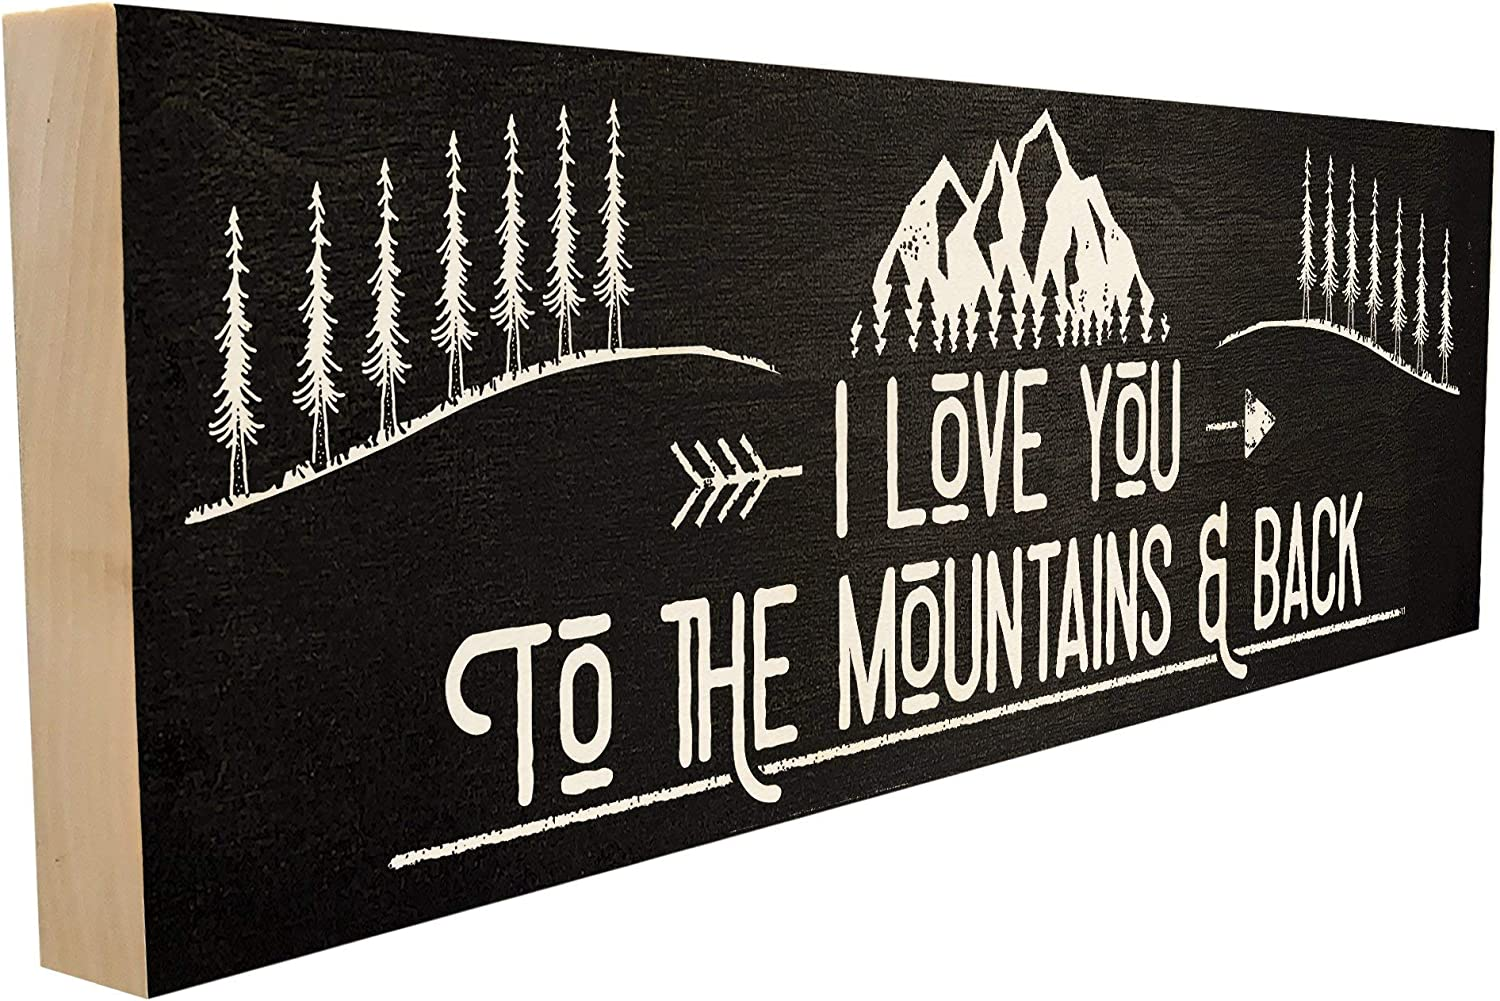 I Love You to The Mountains and Back. Hand-Crafted in Tennessee, This Custom Wood Block Sign Measures 4X12 Inches. Authentic, American Made Gift for Family or Friend.